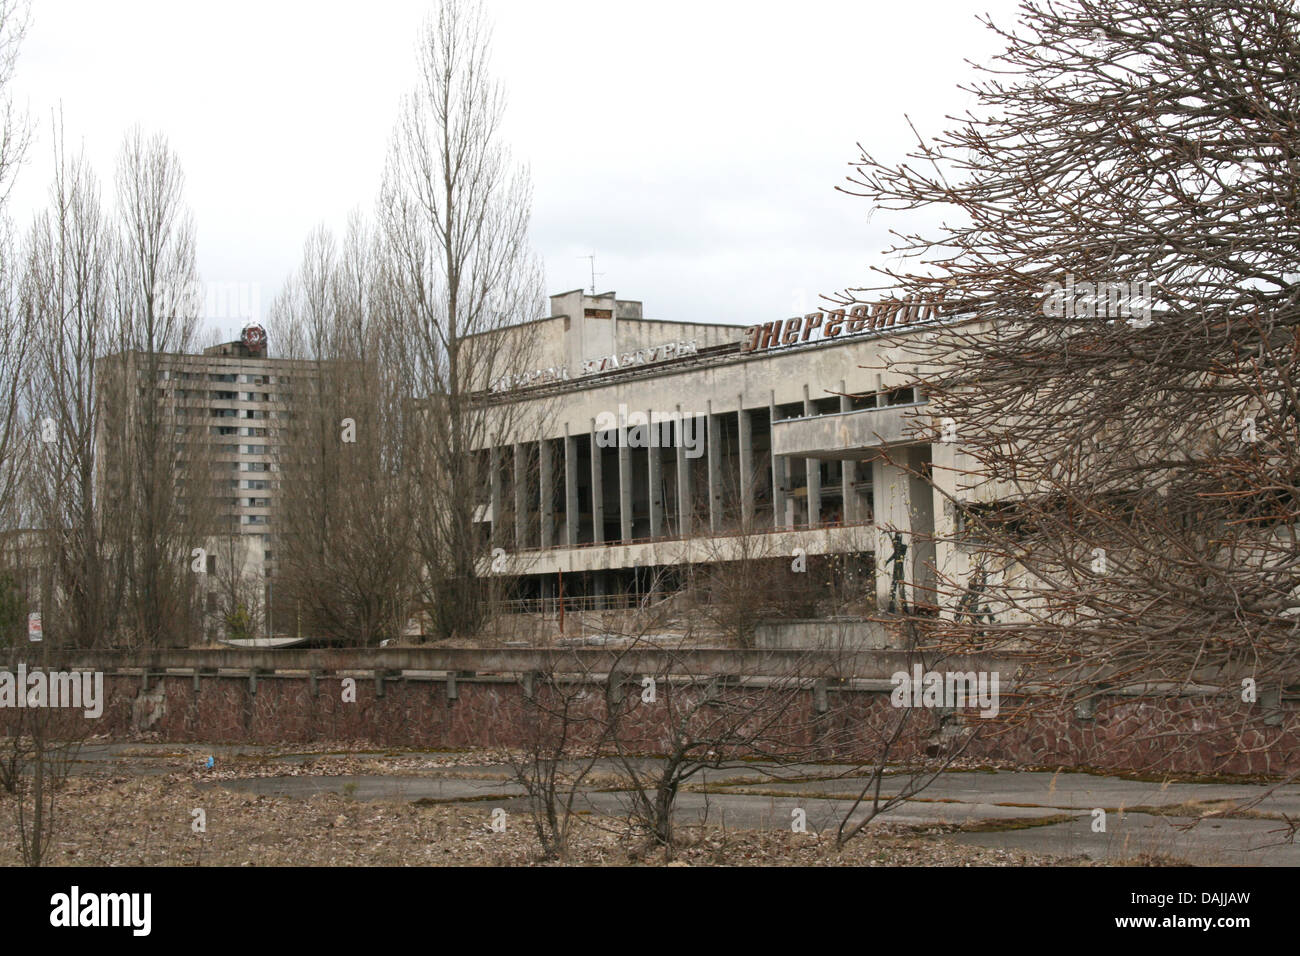 The culture palace in the ghost town of Pripyat, Ukraine, 7 April 2011. On 26 April 1986 the nuclear power plant - Stock Image